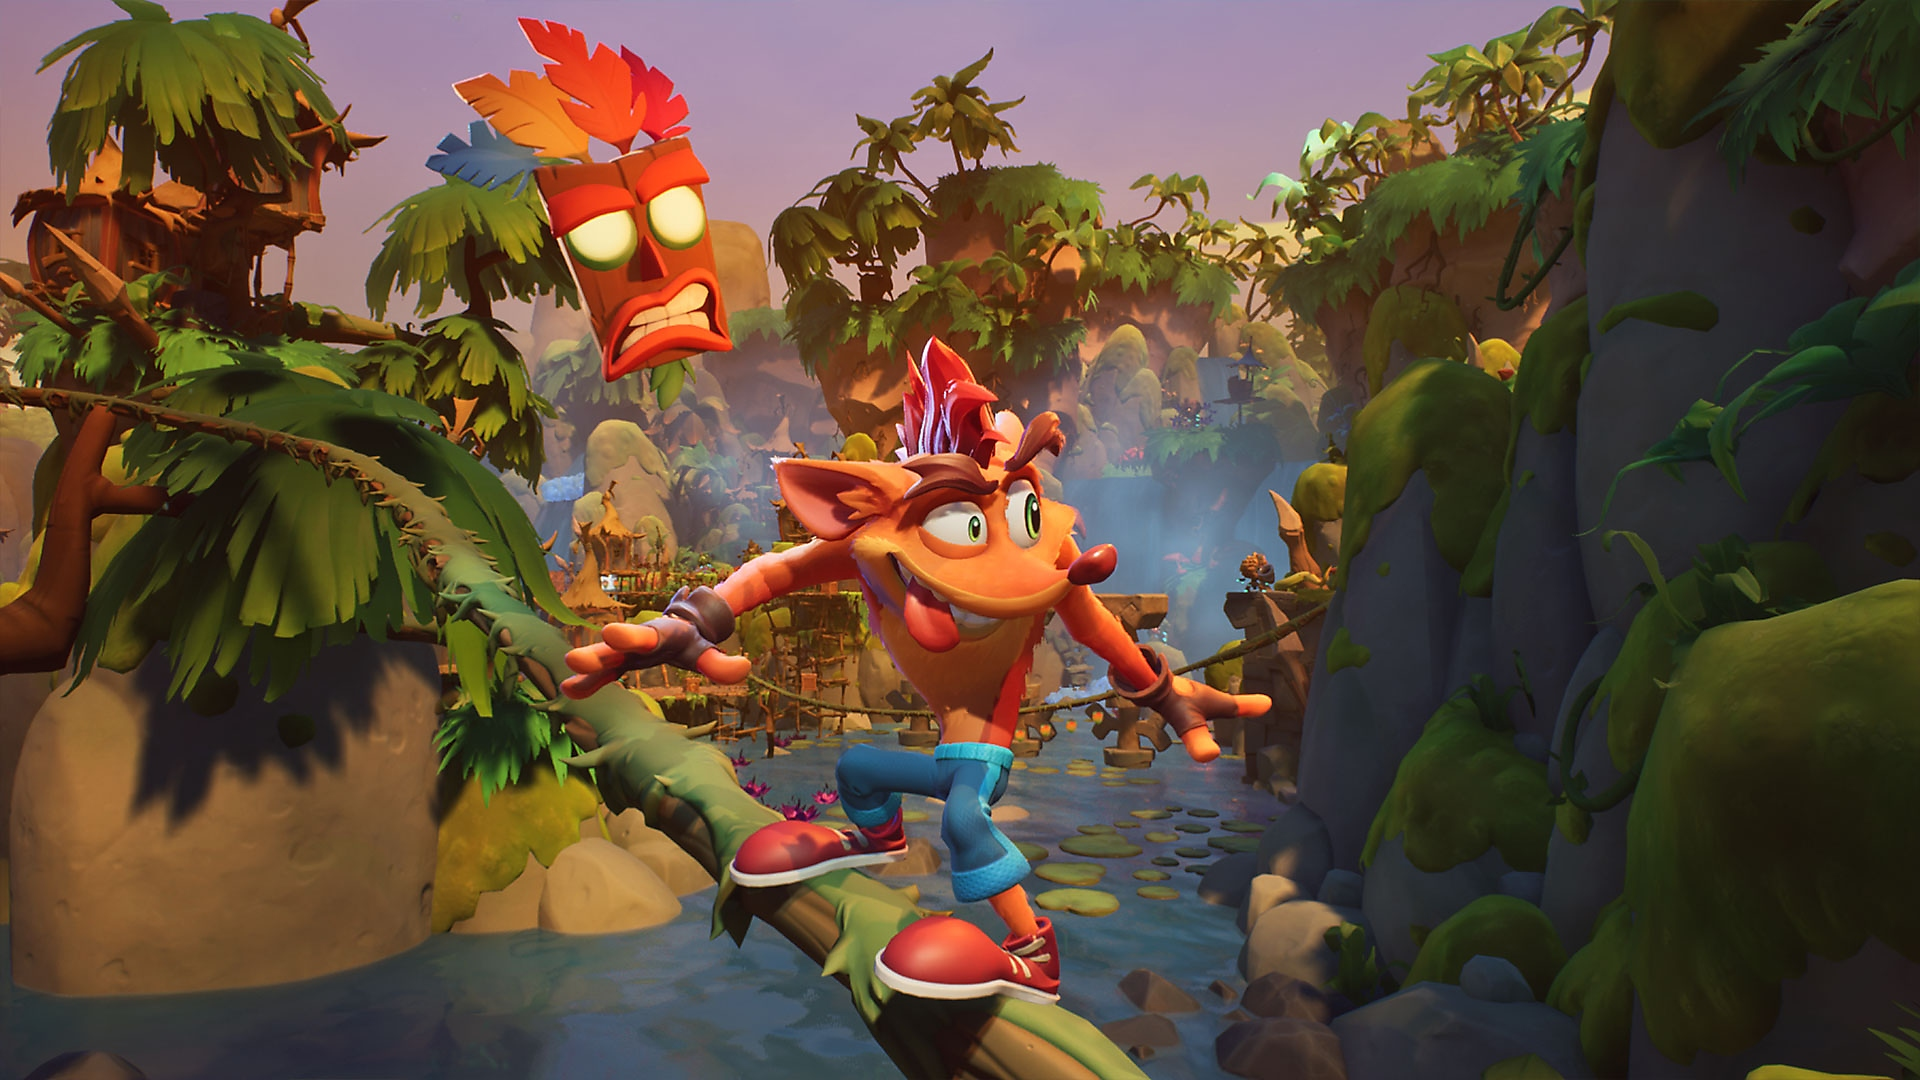 Crash Bandicoot 4: It's About Time - Captura de pantalla de revelación